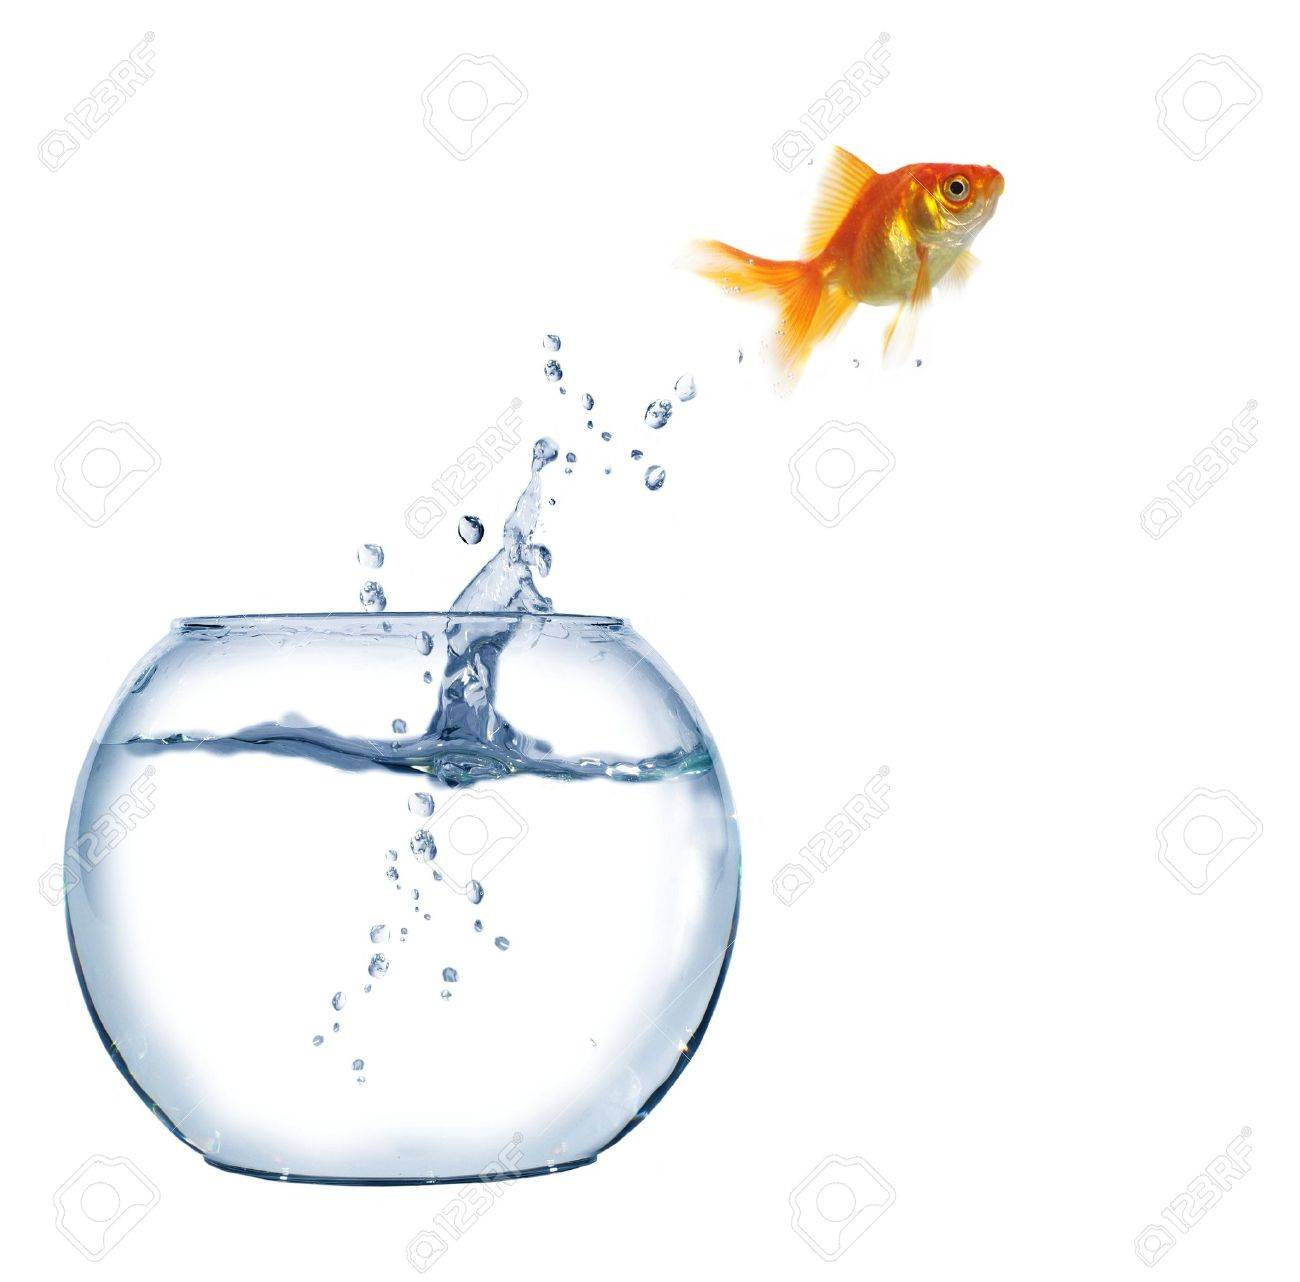 jumping out fish from aquarium on white background - 6236709